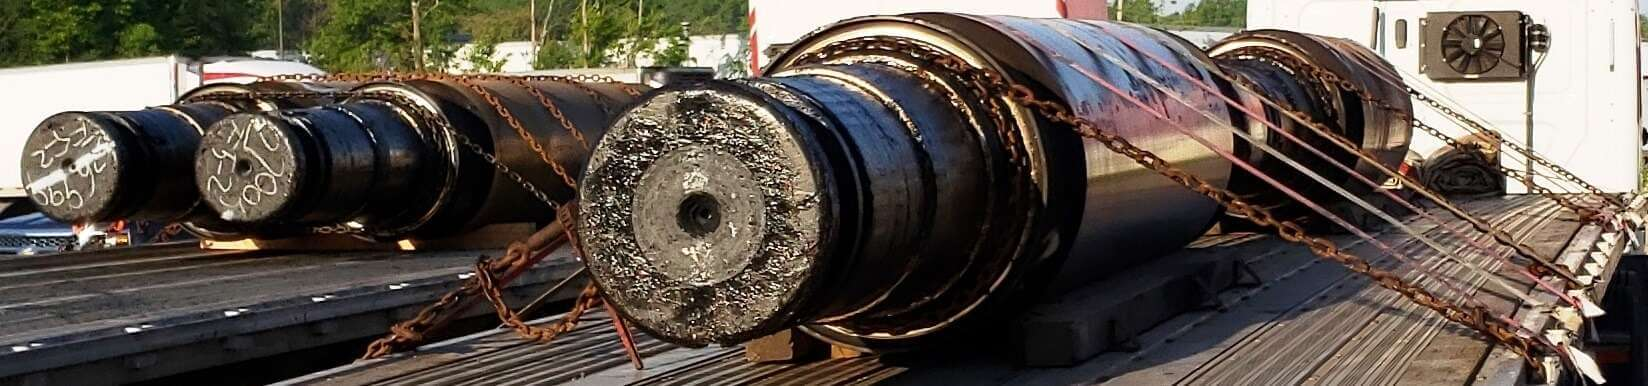 H-5:  The load on the left is belly loaded side by side. The weight is concentrated in the center of the trailer. 6 tie downs are securing both rolls. The ends are choked, pulling them together. The identical load on the right is loaded end to end. The weight is spread out over the length of the trailer. 6 tie downs are securing each roll. The ends are choked, mechanically securing the rolls from sliding.